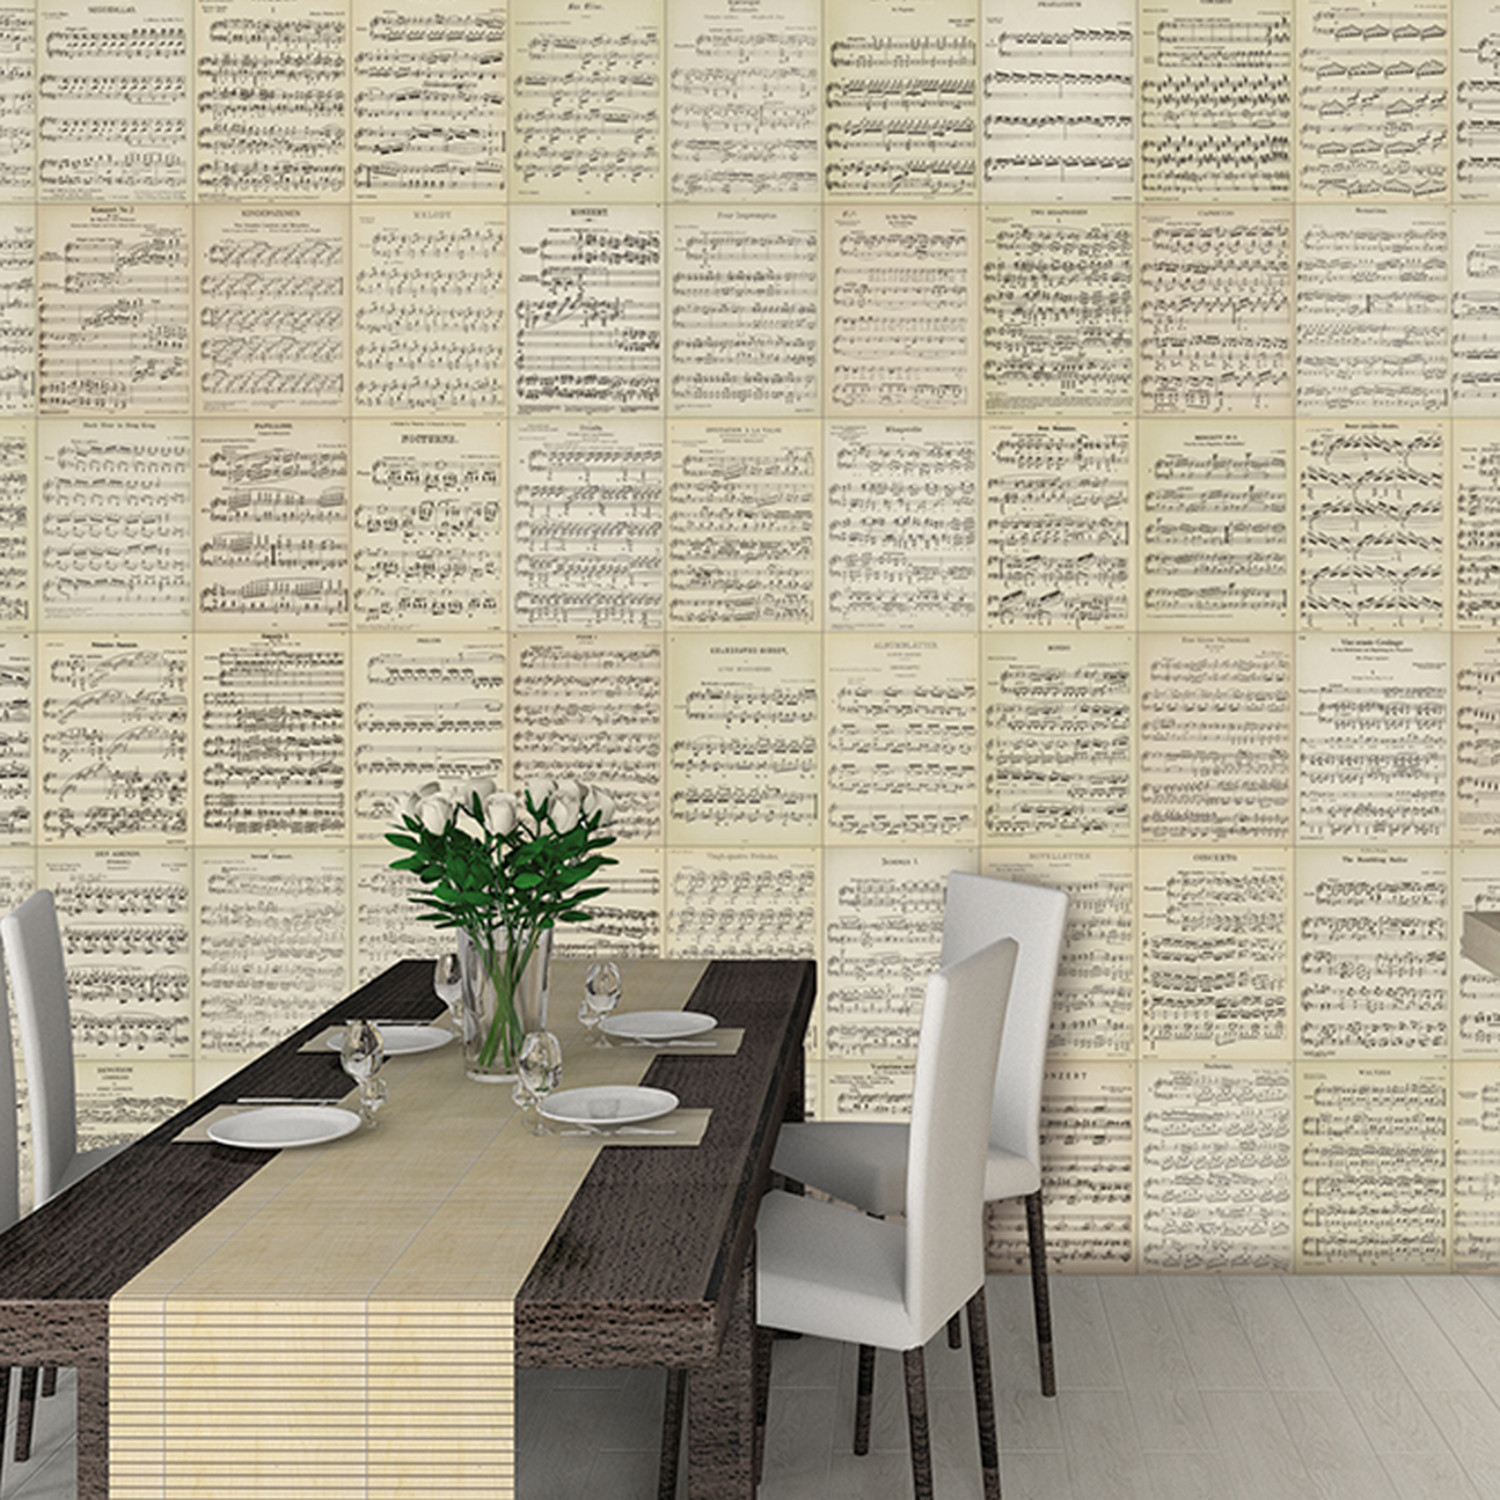 Creative collage music sheets 1 wall murals touch of modern creative collage music sheets amipublicfo Choice Image